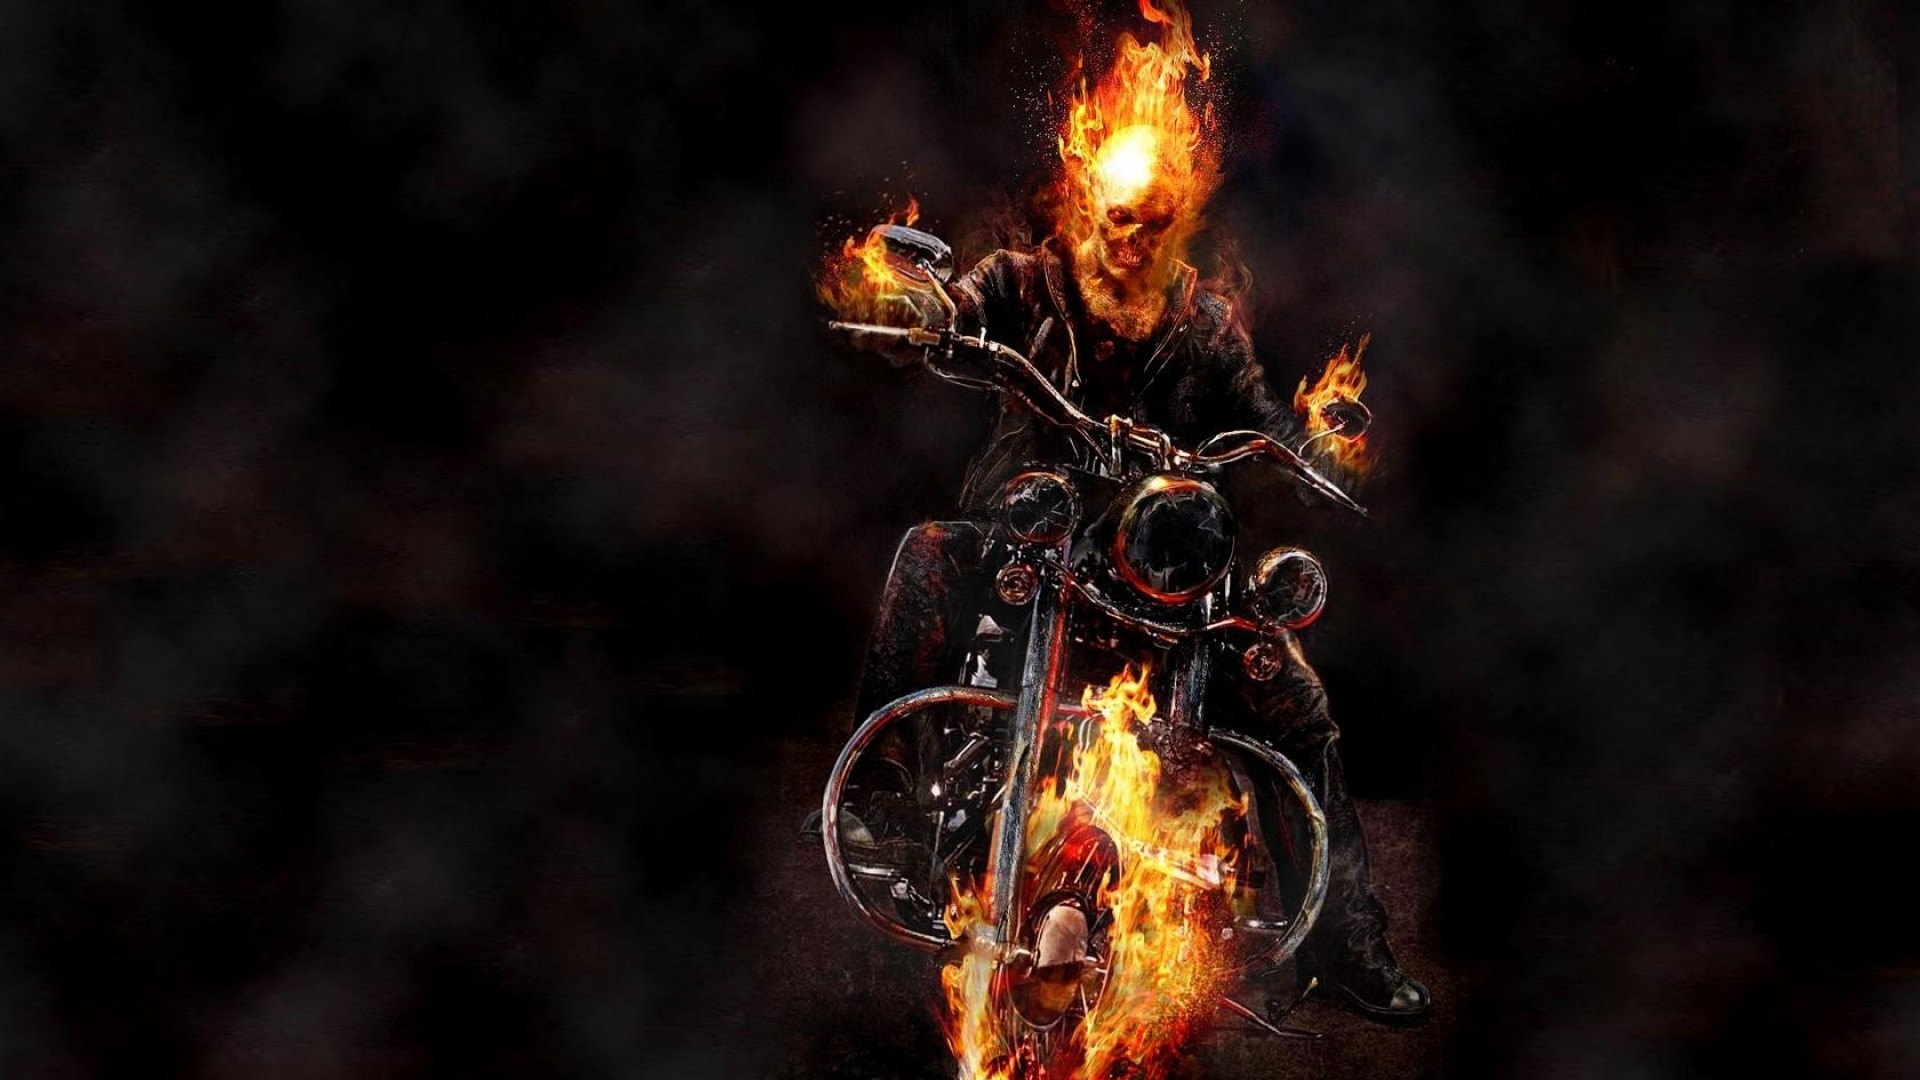 1920x1080 Full HD 1080p Ghost rider Wallpapers HD, Desktop Backgrounds